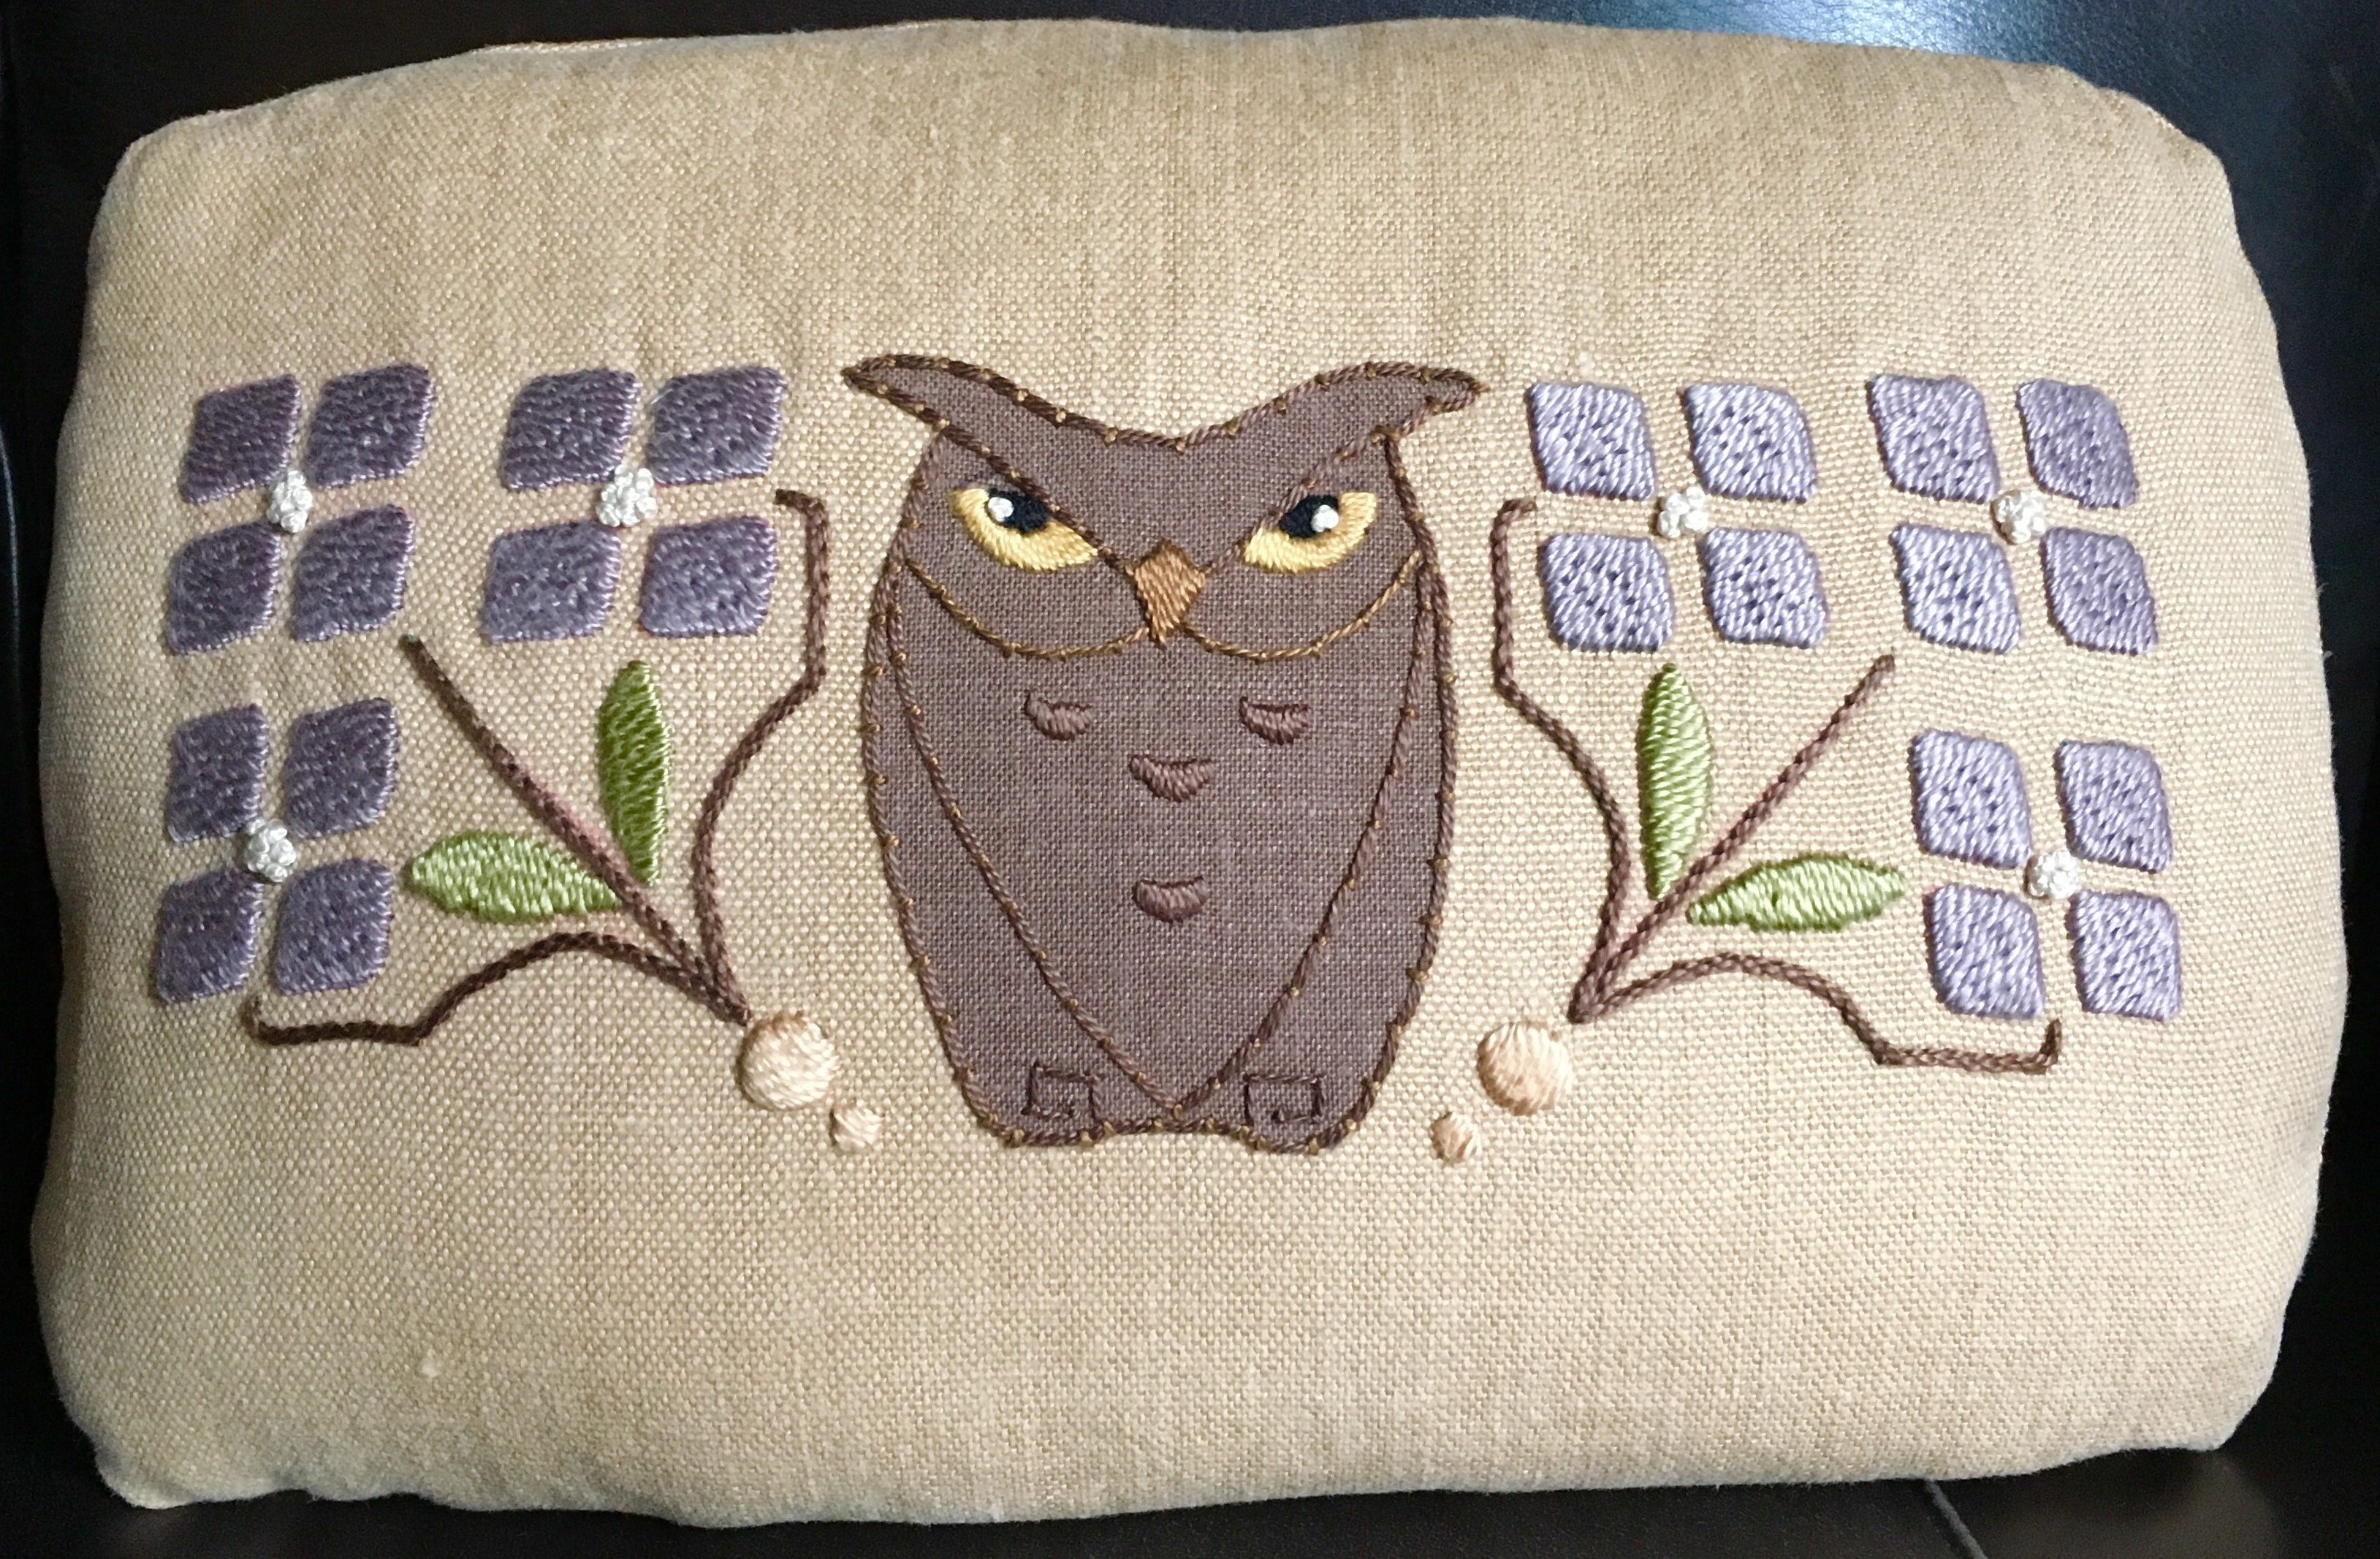 Little Bro Owl Pillow Embroidery Kit